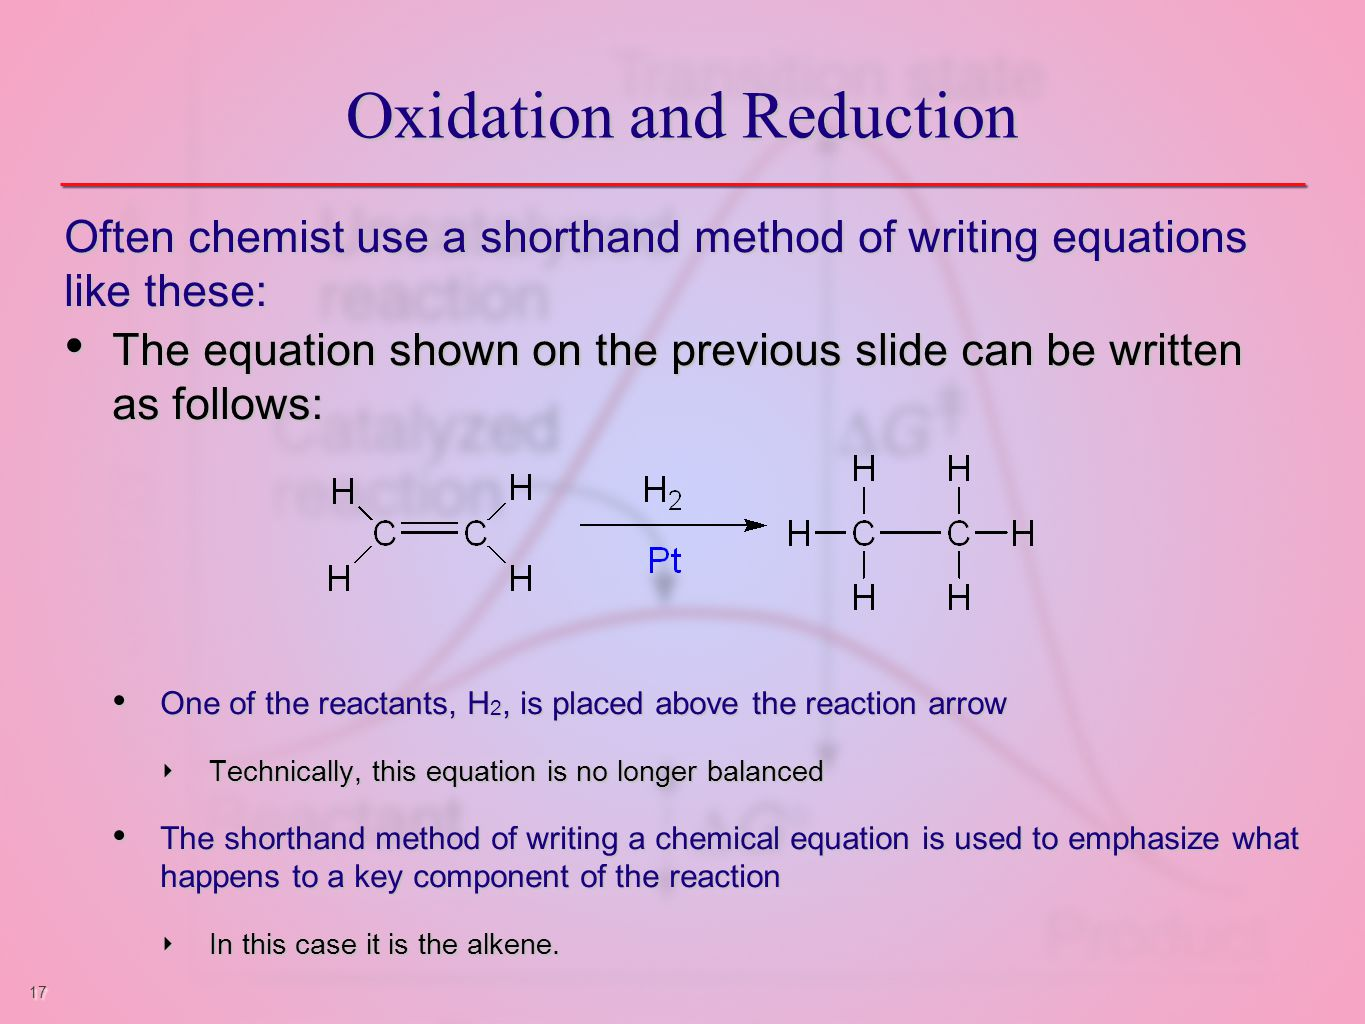 17 Oxidation and Reduction Often chemist use a shorthand method of writing equations like these: The equation shown on the previous slide can be written as follows: The equation shown on the previous slide can be written as follows: One of the reactants, H 2, is placed above the reaction arrow One of the reactants, H 2, is placed above the reaction arrow ‣ Technically, this equation is no longer balanced The shorthand method of writing a chemical equation is used to emphasize what happens to a key component of the reaction The shorthand method of writing a chemical equation is used to emphasize what happens to a key component of the reaction ‣ In this case it is the alkene.